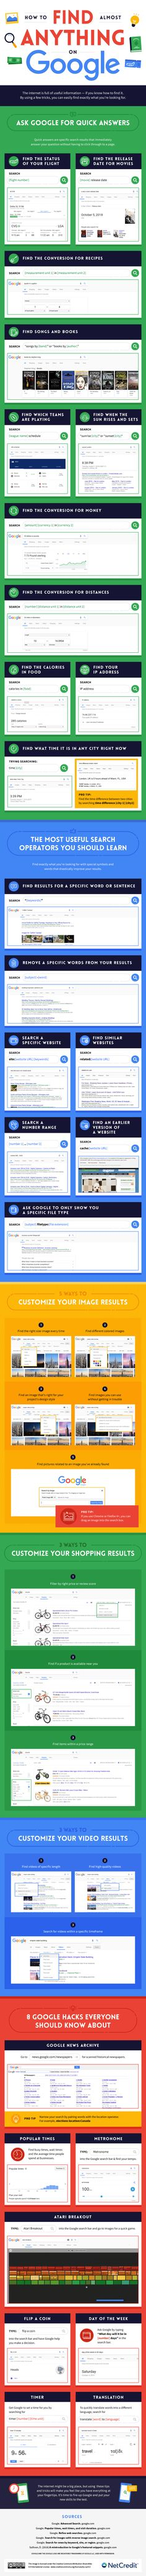 Use These Nifty Google Hacks To Search Like A Pro - infographic Content Marketing Strategy, Business Marketing, Inbound Marketing, Google Tricks, Blog Names, Technology Articles, Digital Marketing, Nifty, Search Engine Optimization